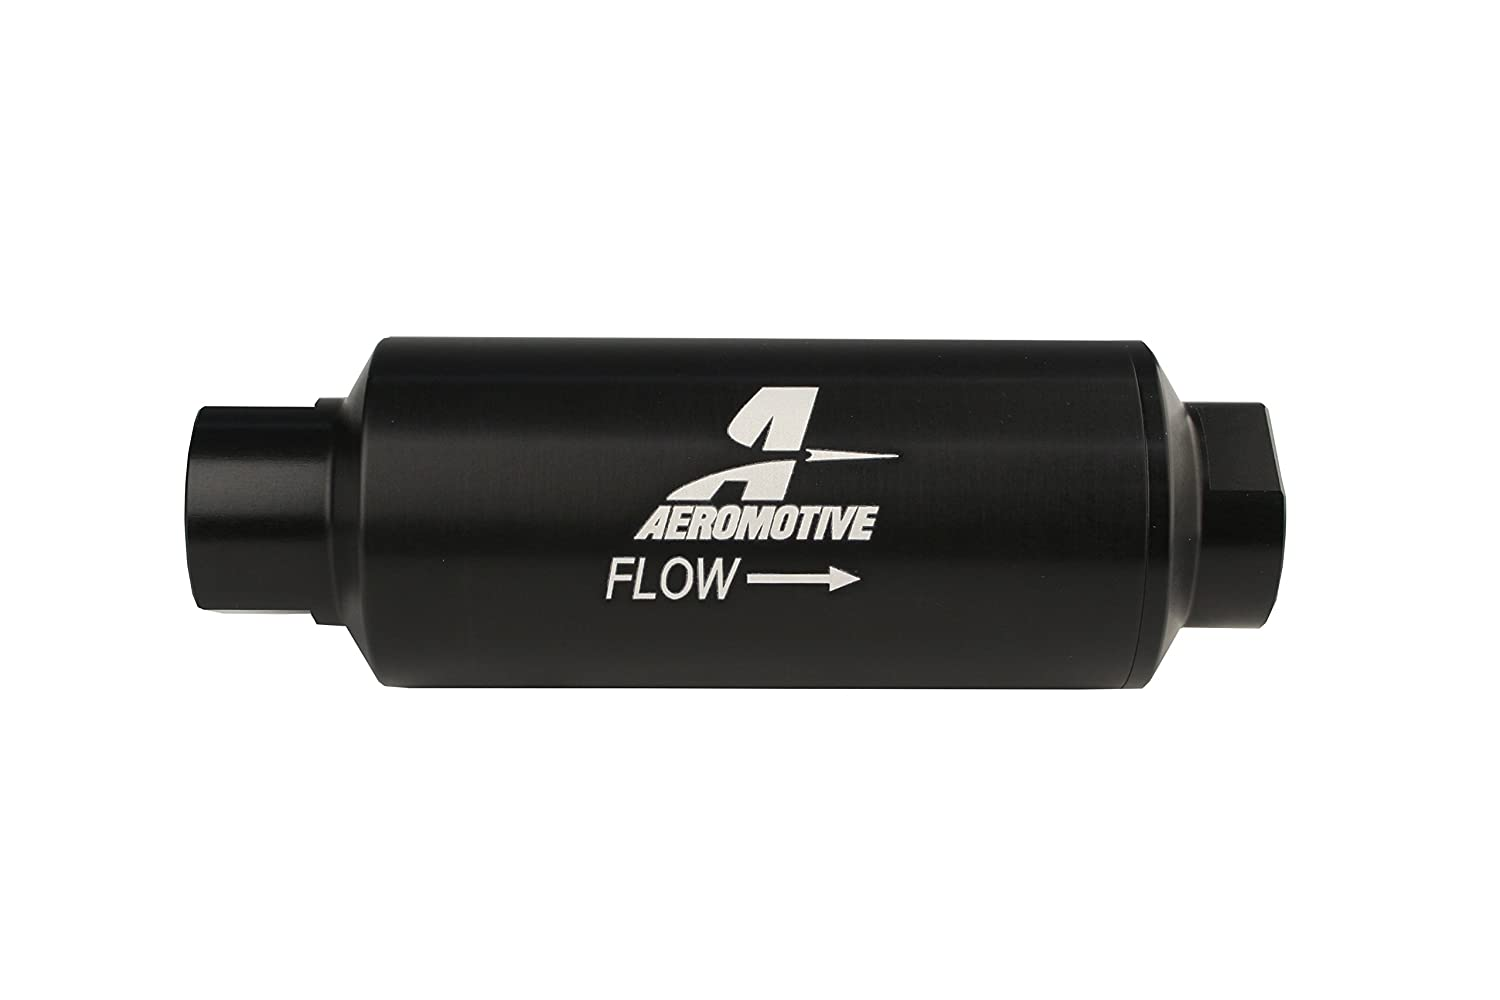 Aeromotive 12309 Filter, In-Line, 100-Micron Stainless Mesh Element, ORB-12 Port, Black Hard-Coat, Marine, 2-1/2' OD